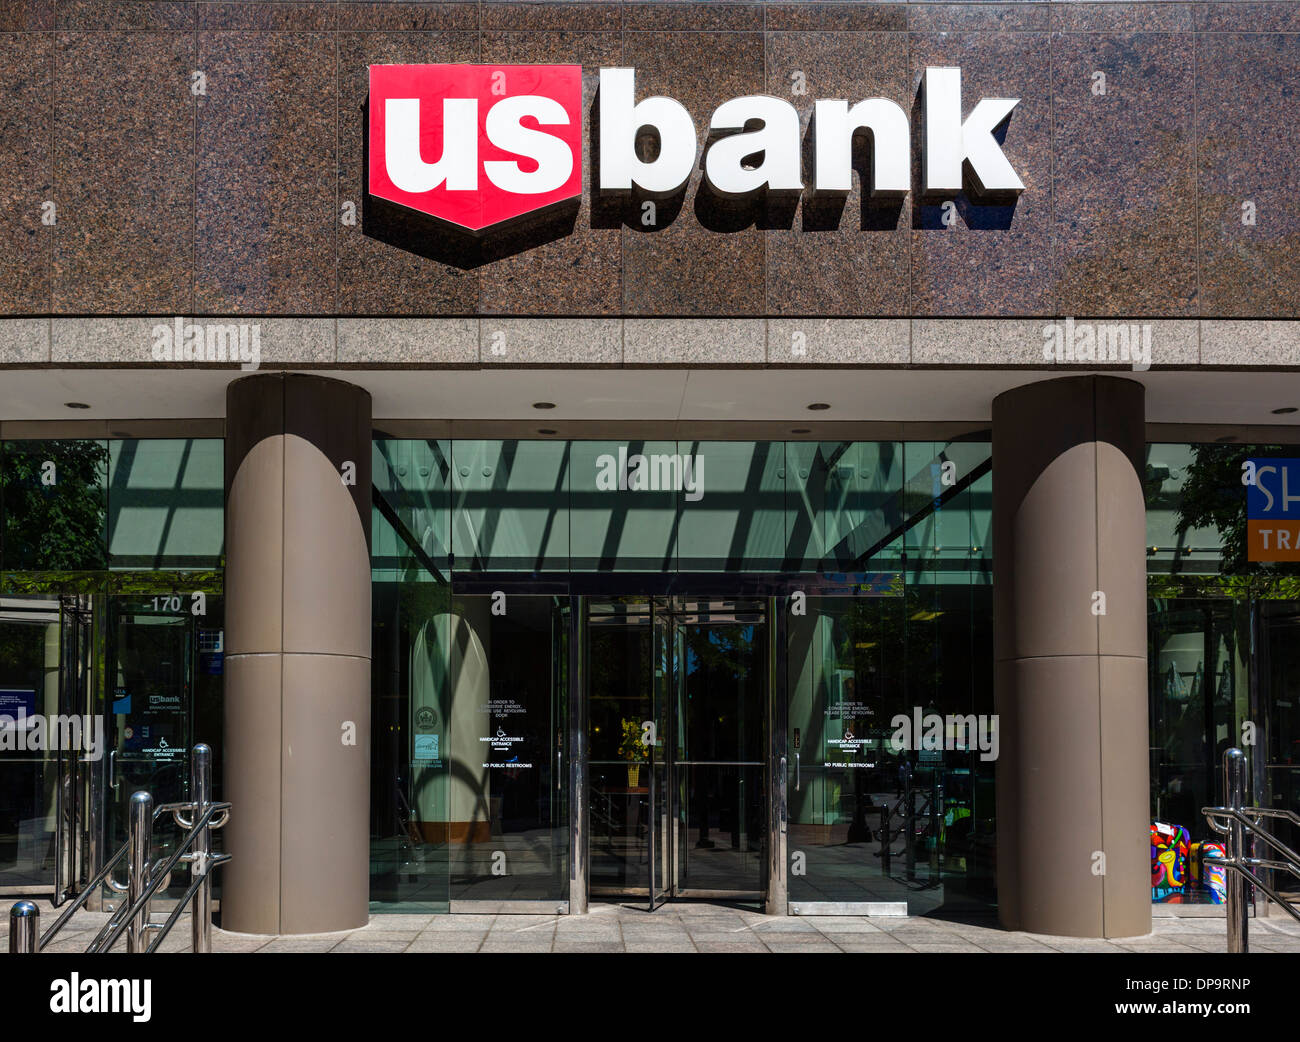 US Bank branch in Salt Lake City, Utah, USA - Stock Image